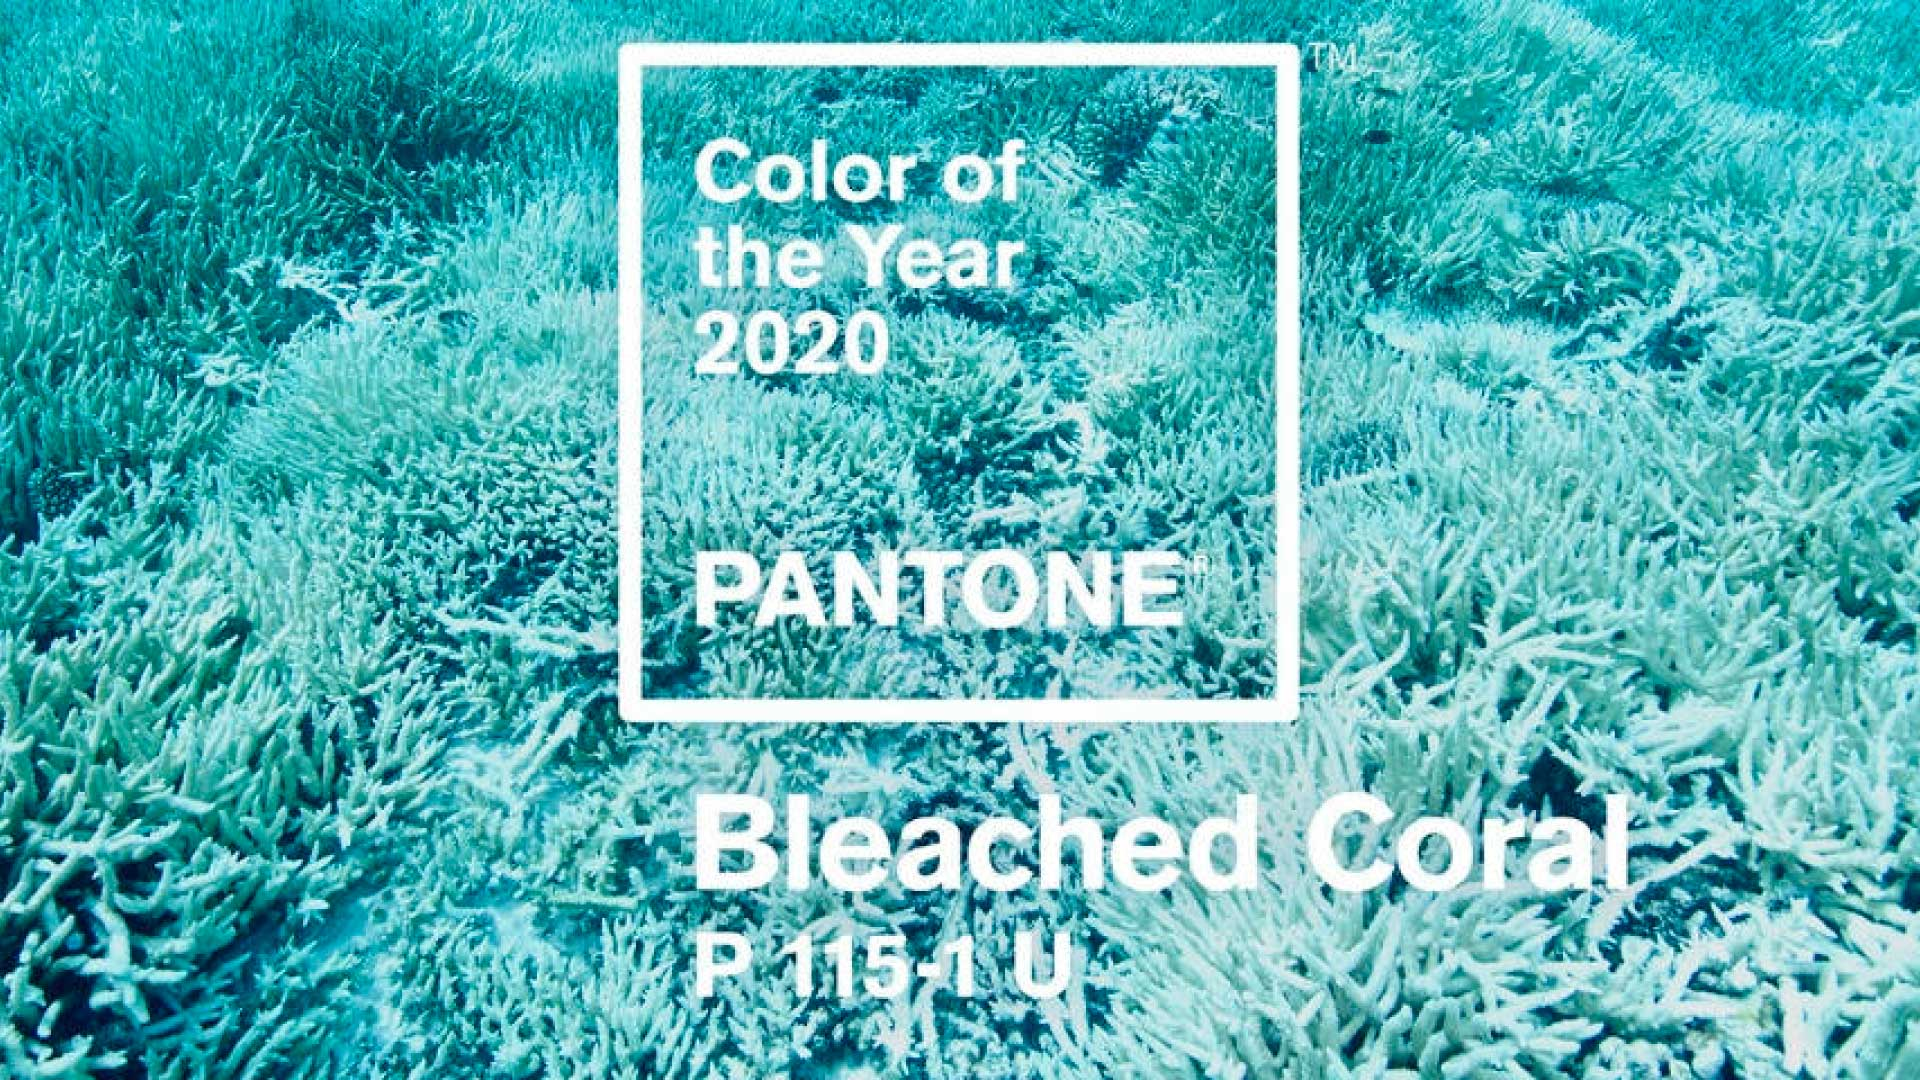 Cor do ano 2020: Pantone